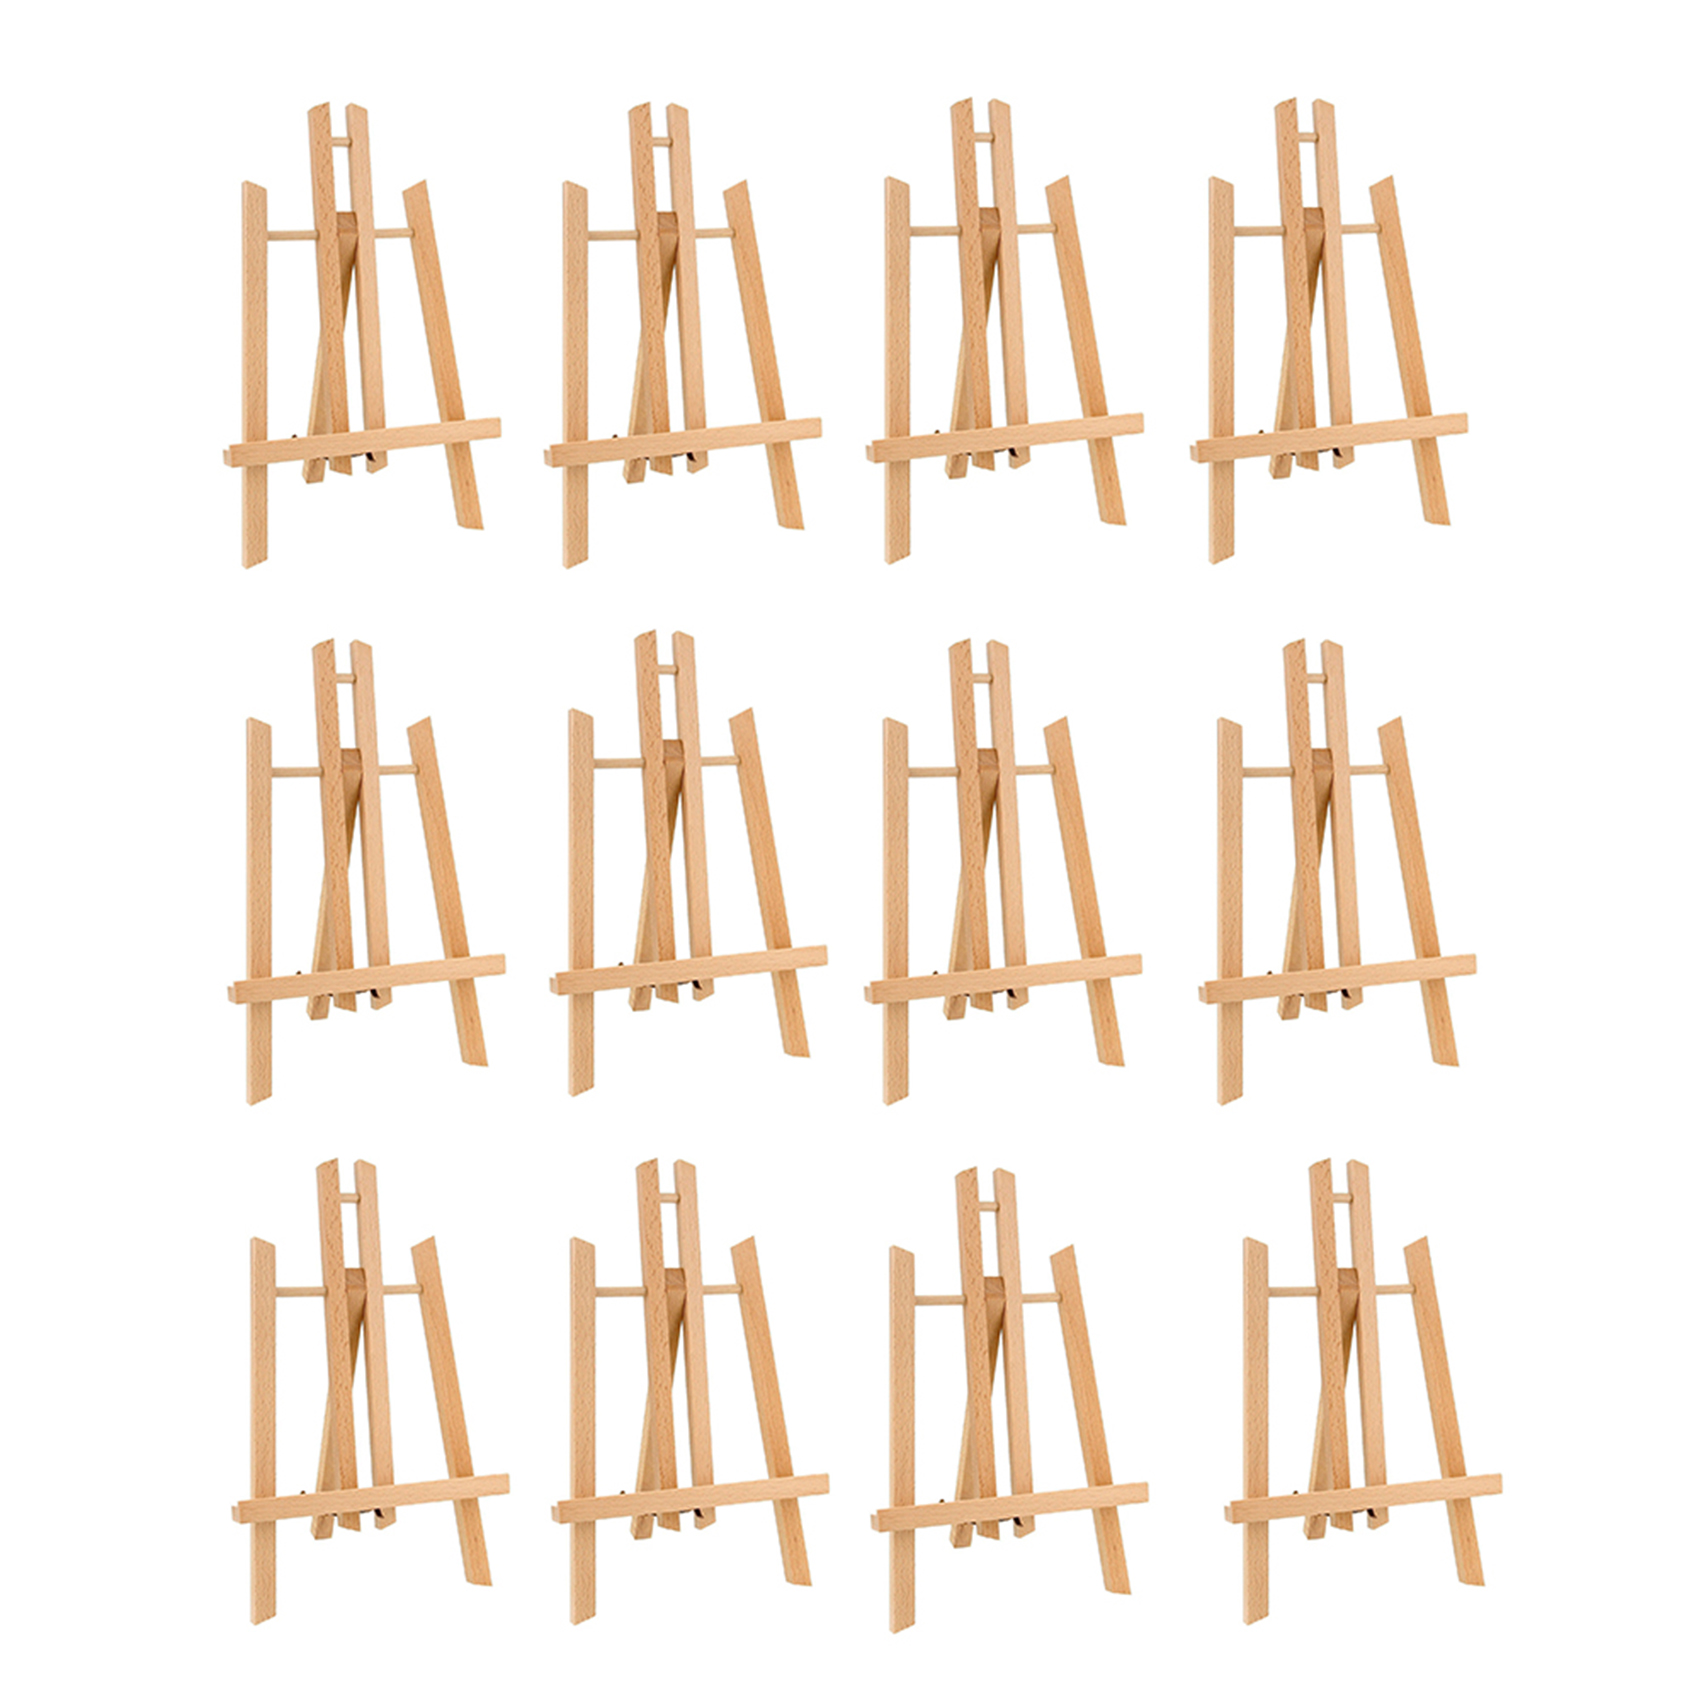 CONDA 11 inch Mini Wood Display Easel 12 Pack Wood Easels Art Painting Card Stand Display Holder Craft Small Acrylic Oil Project